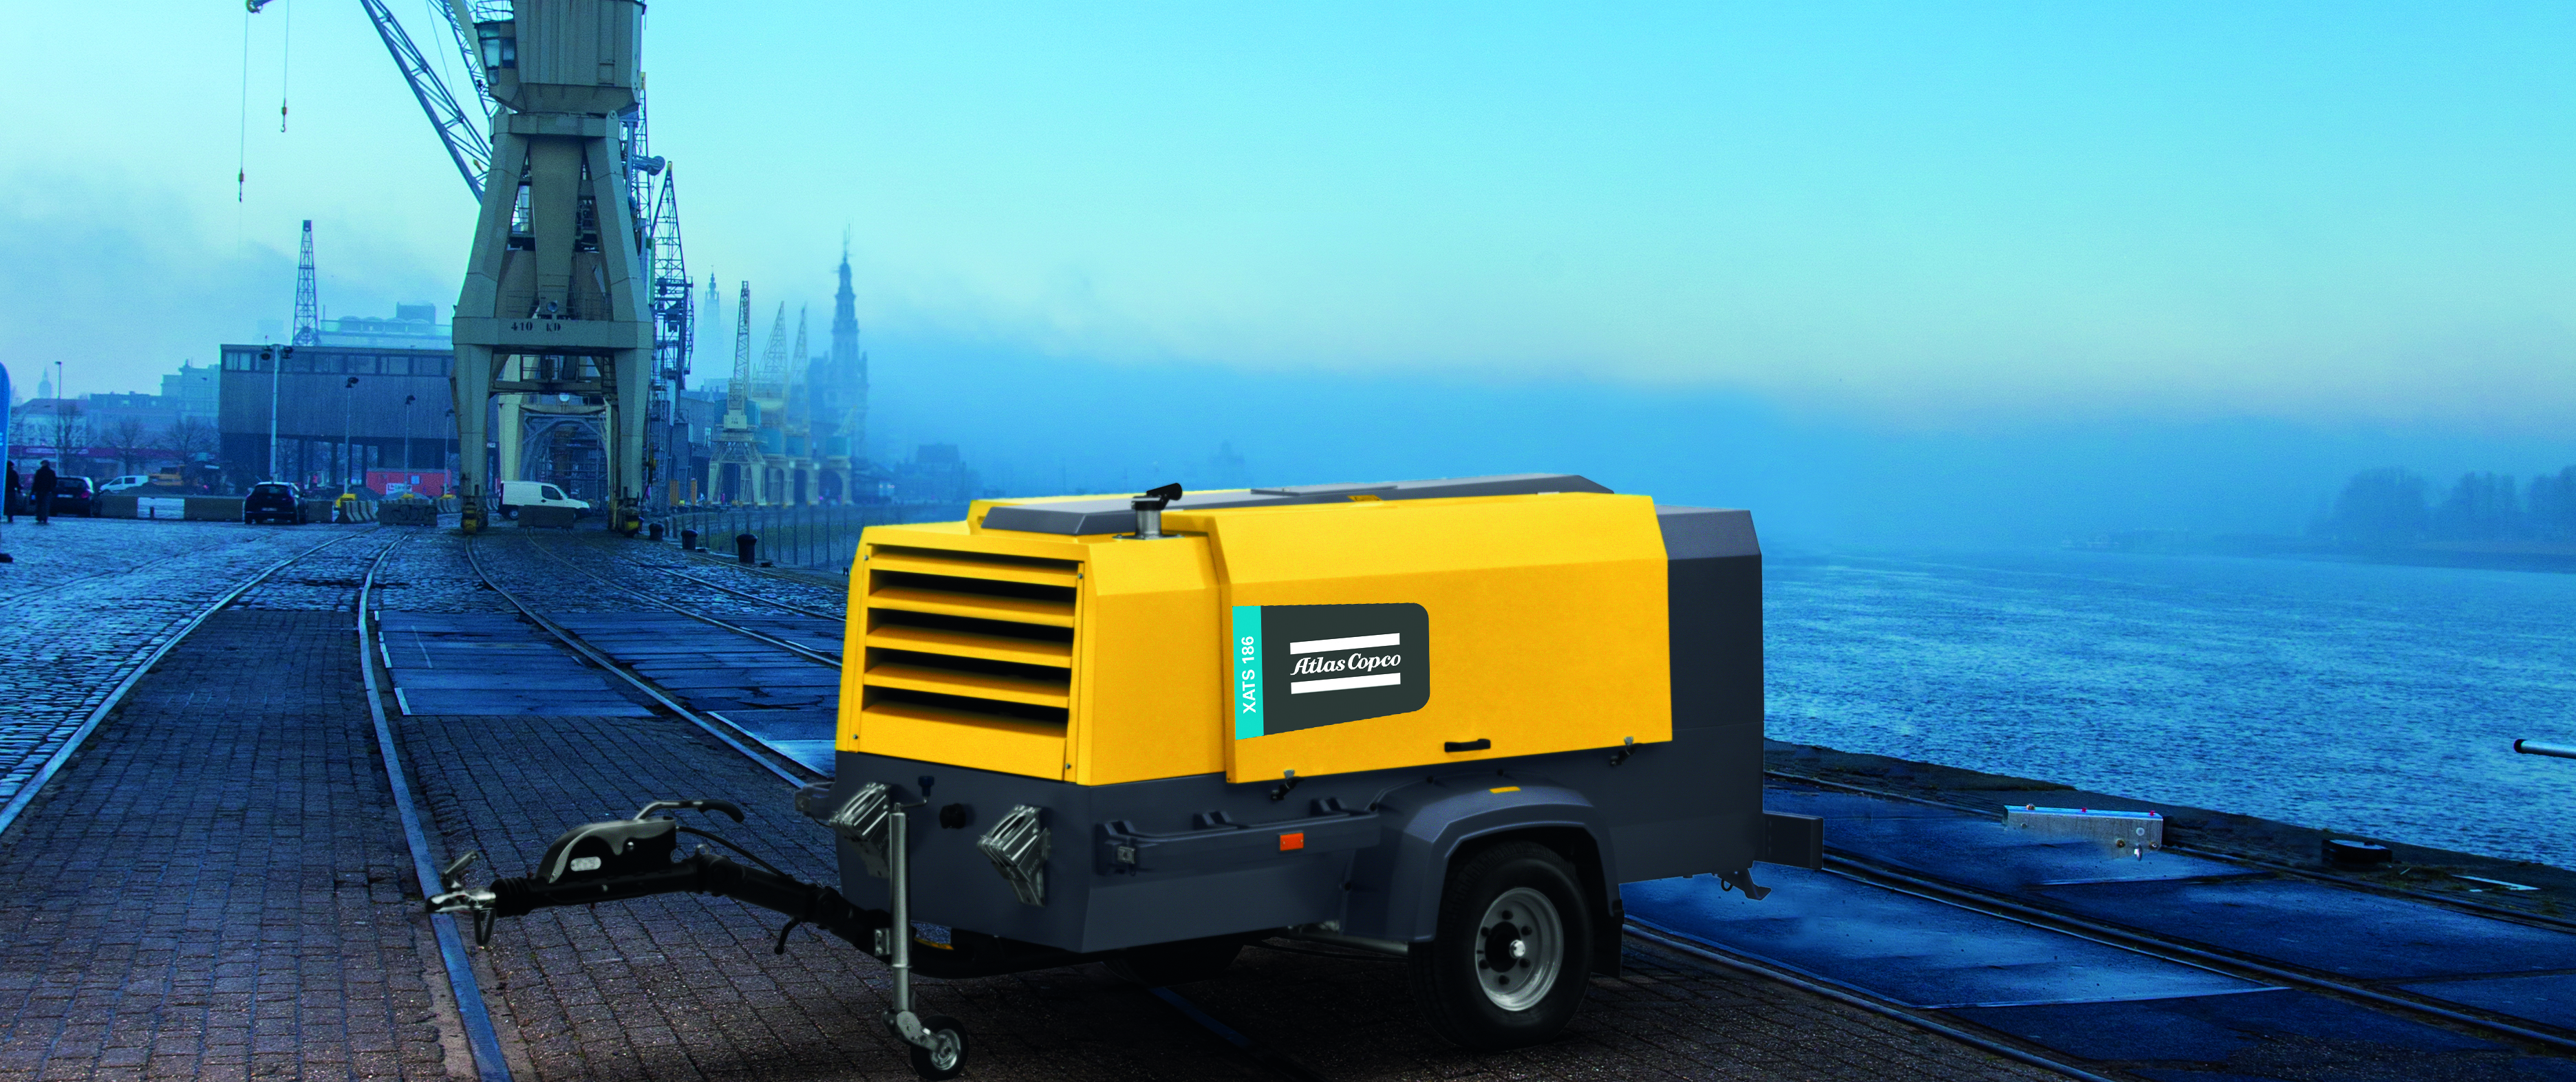 diesel air compressors, portable diesel air compressors, towable compressors